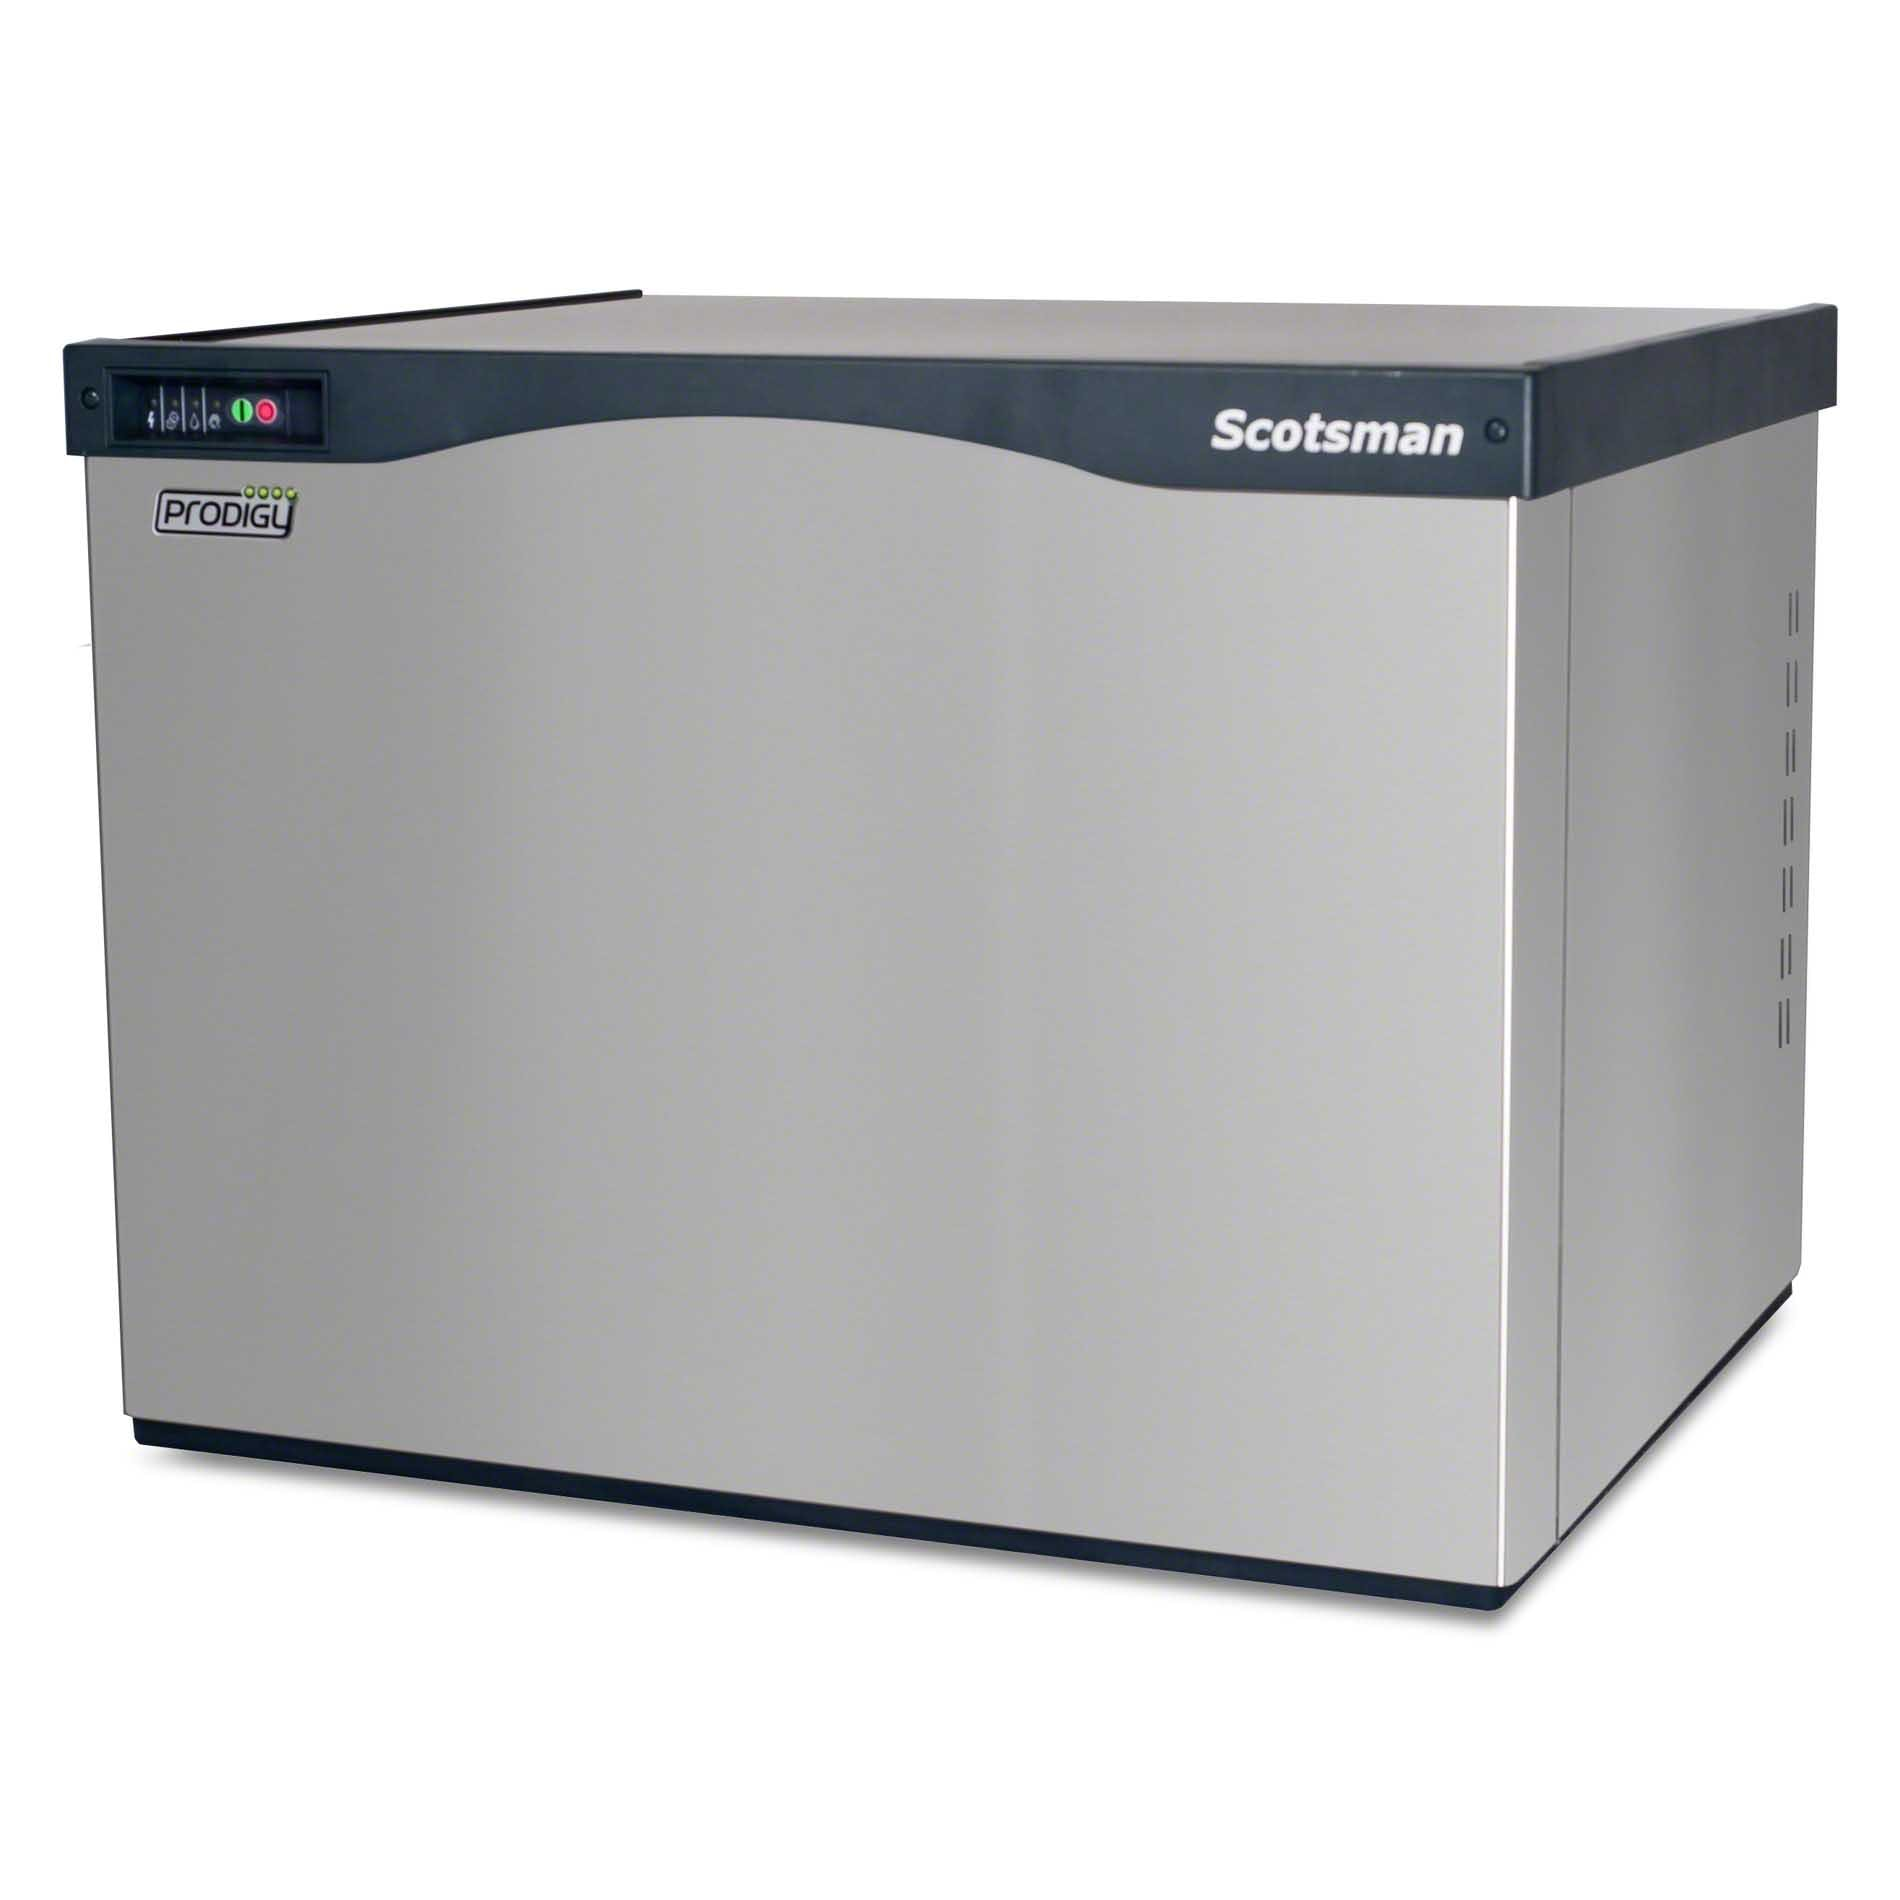 Scotsman - C0530SR-1A 511 lb Half Size Cube Ice Machine - Prodigy Series Ice machine sold by Food Service Warehouse